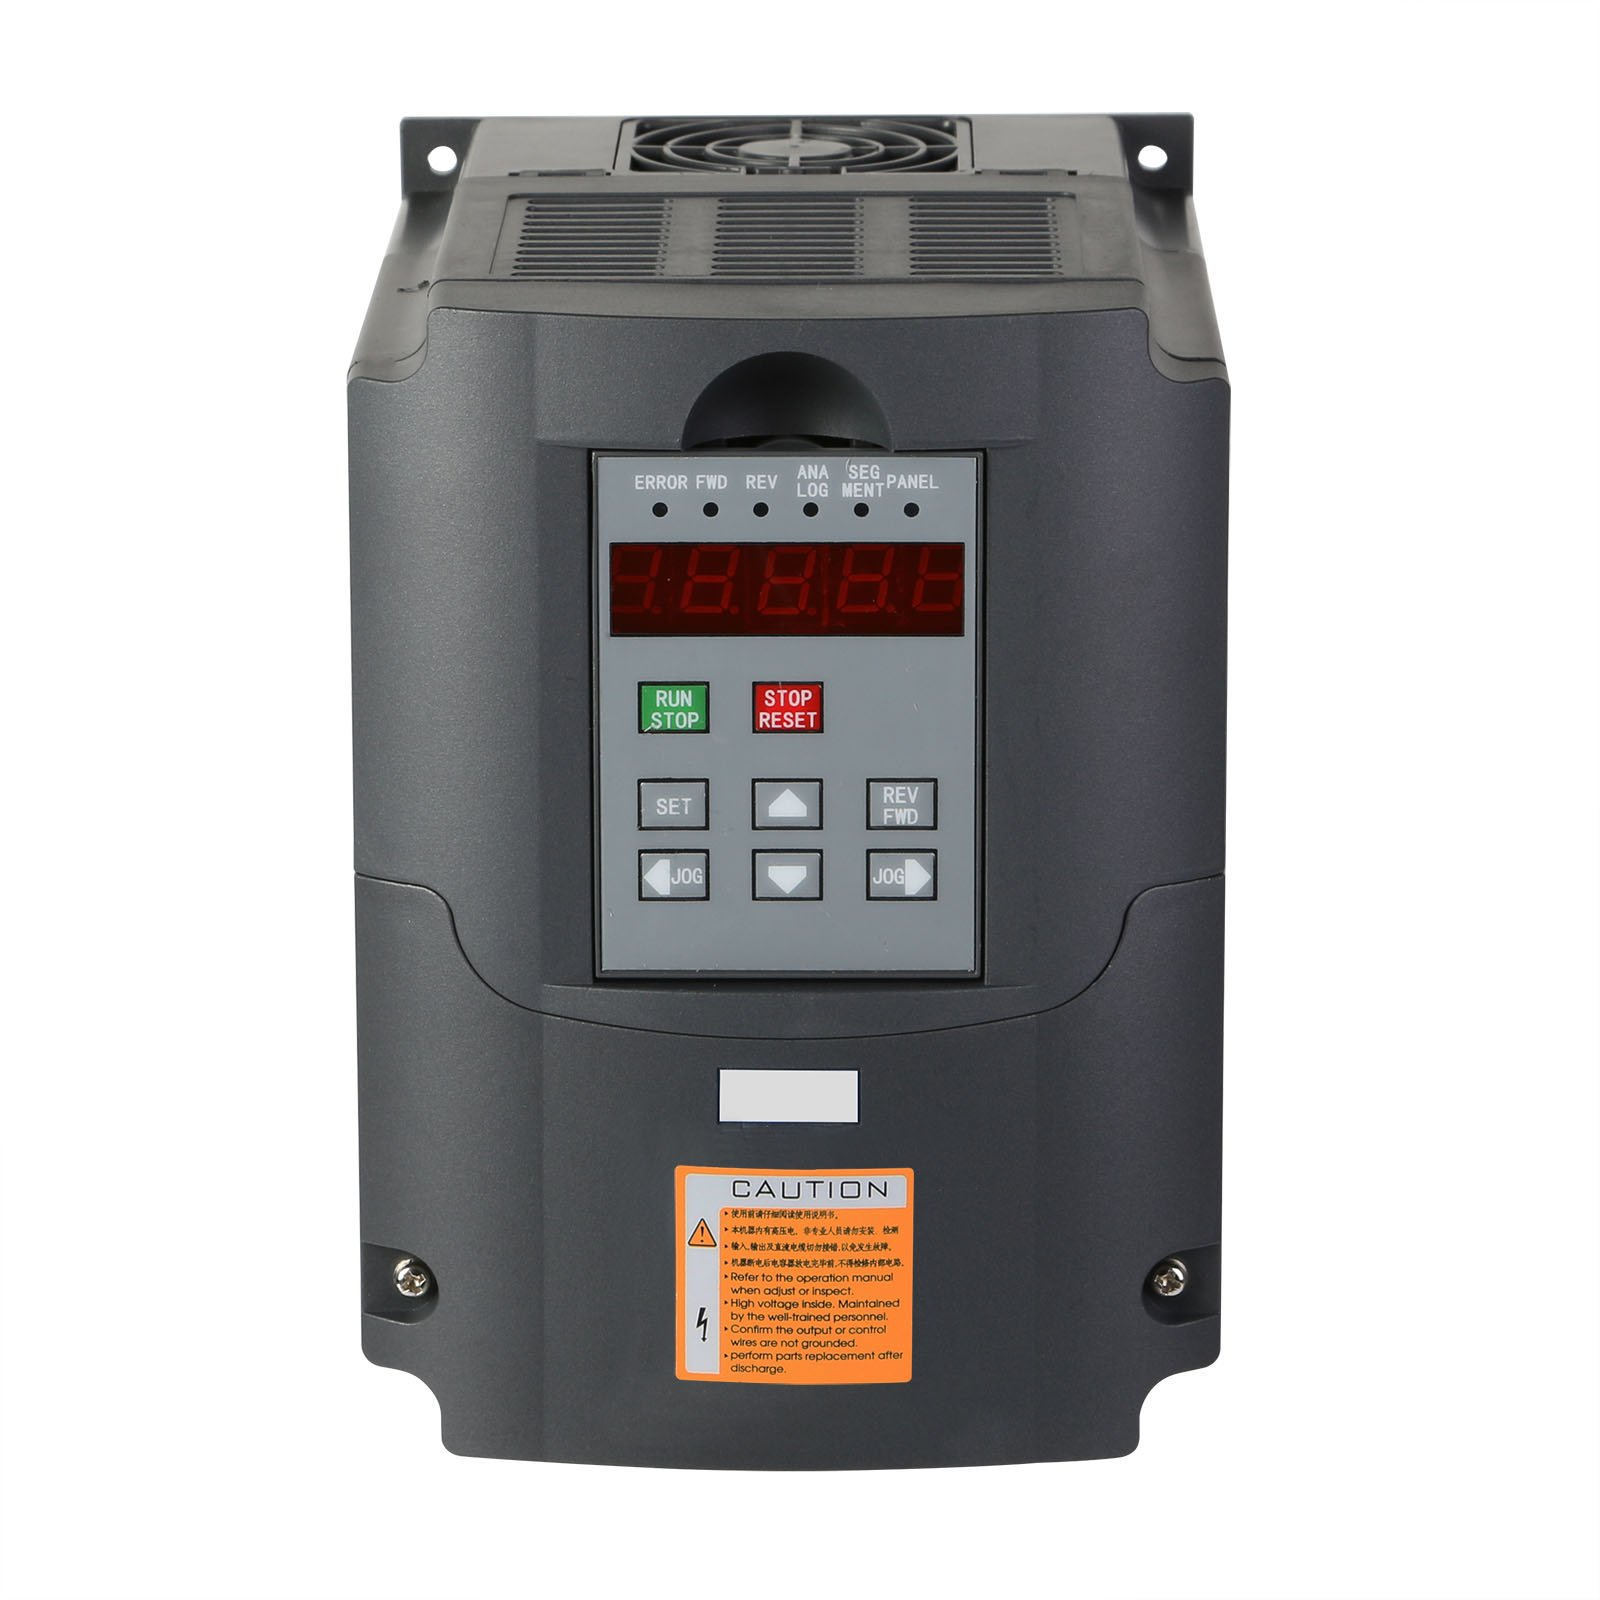 Mophorn VFD Drive VFD Inverter 220V 2.2KW 3HP Frequency Drive Inverter Professional Variable Frequency Drive VFD for Spindle Motor Speed Control (2.2KW VFD)